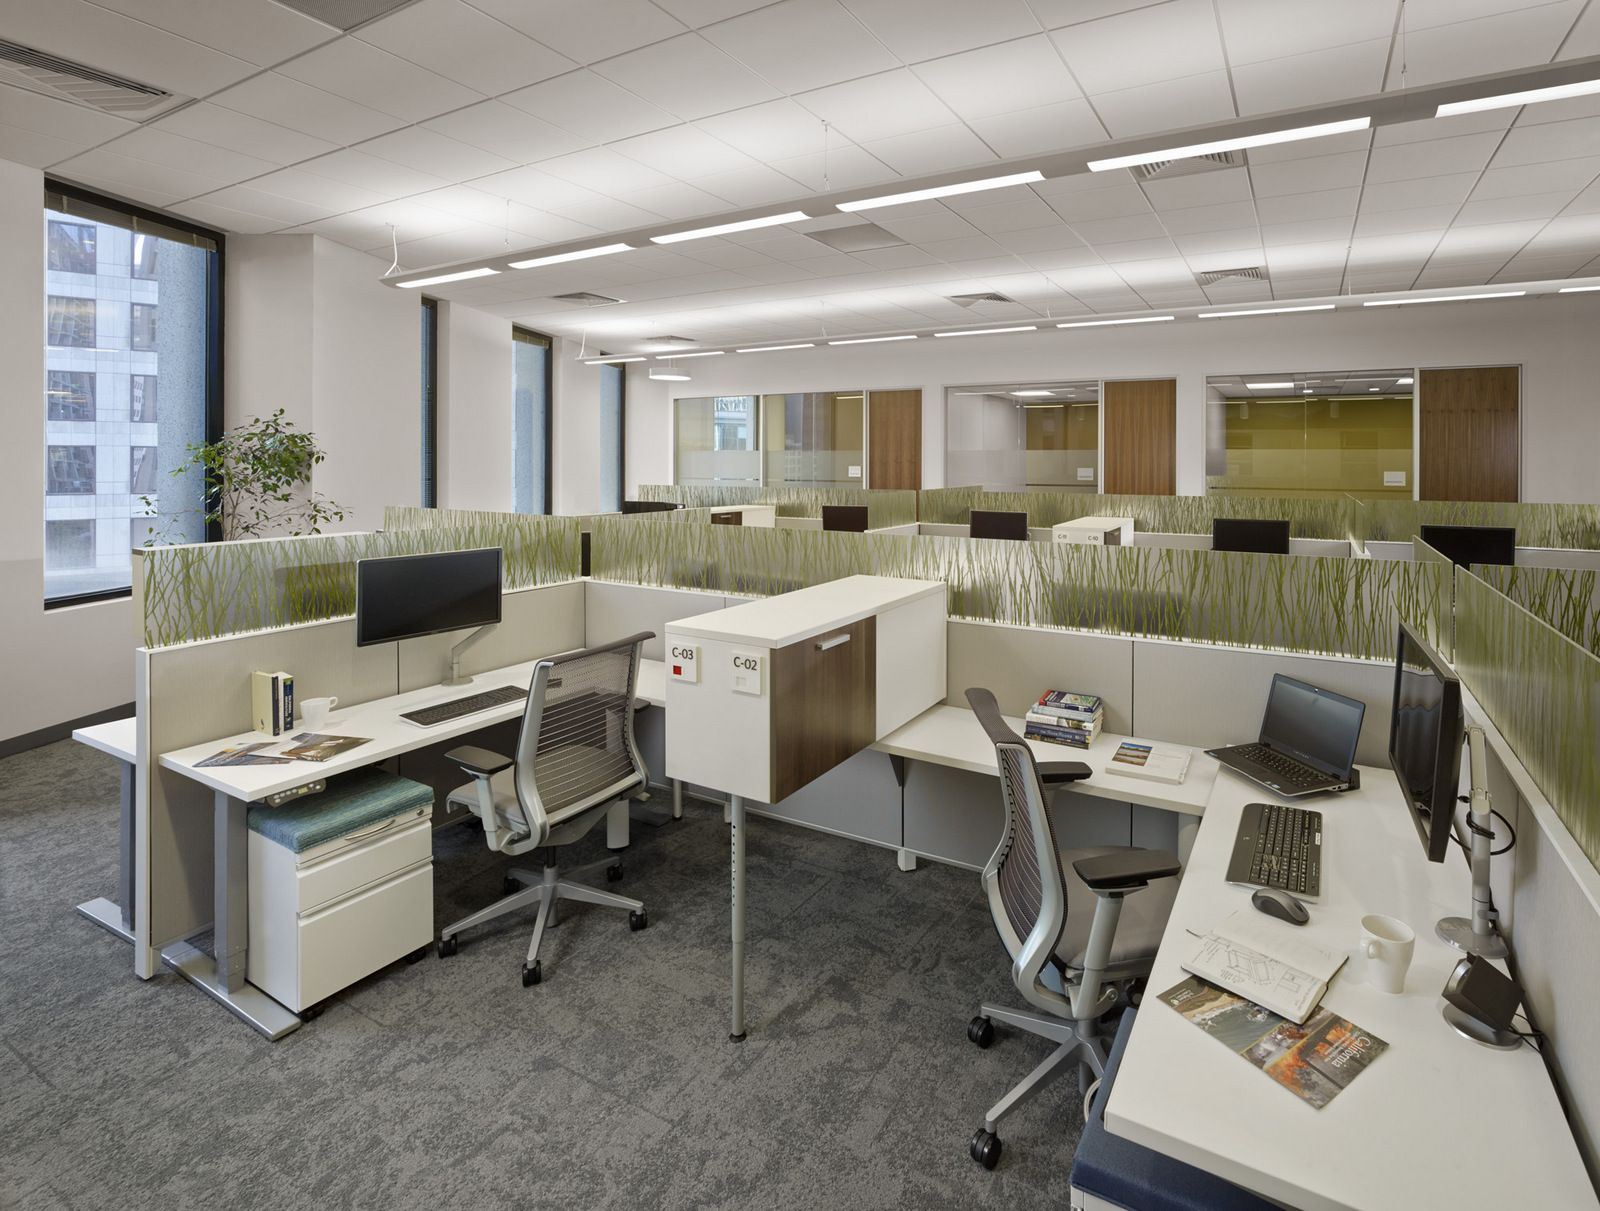 steelcase furniture - low height divided workstations | office